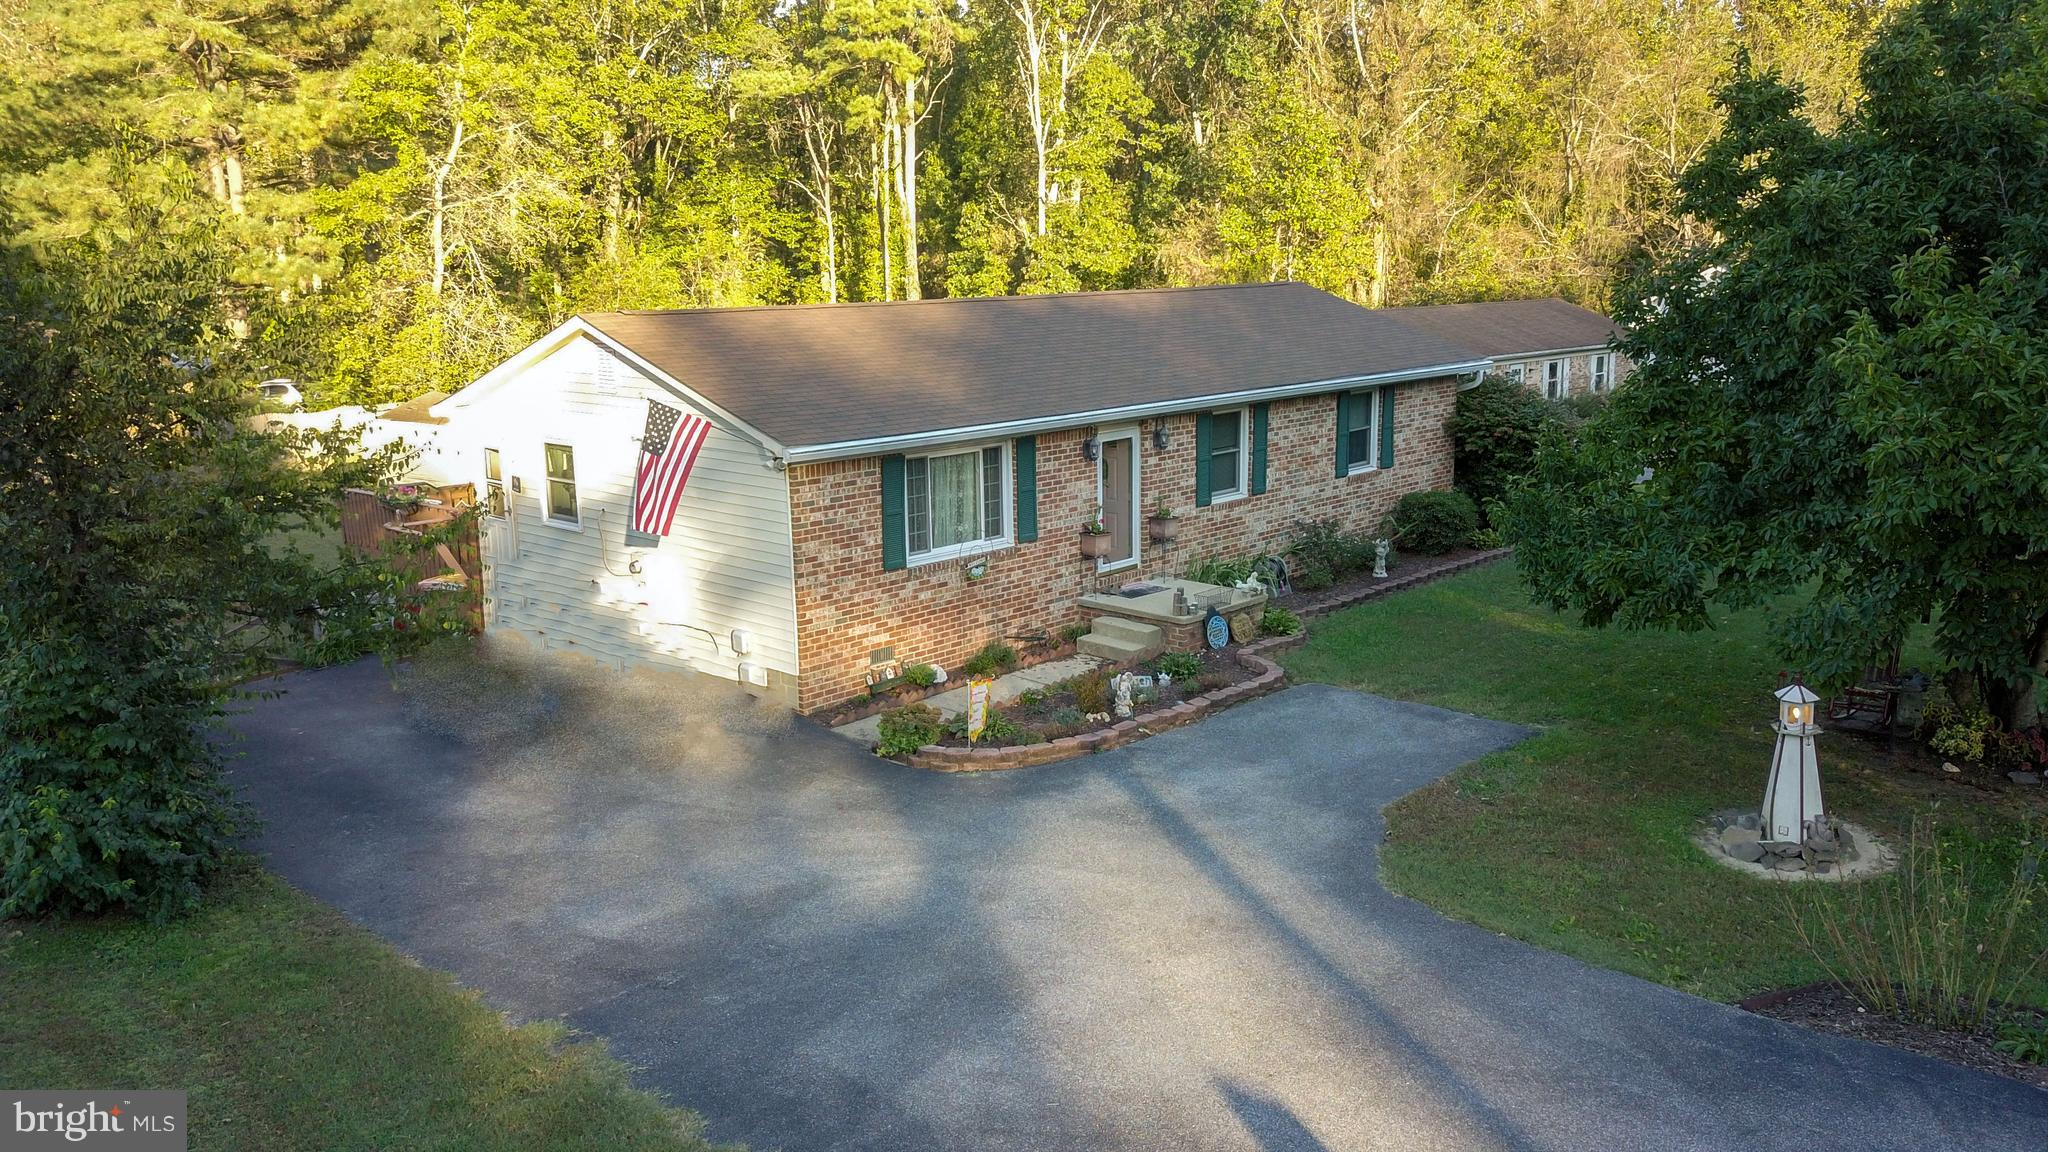 Beautiful 3 bed, 1 bath rambler with completely fenced -in backyard located in Golden Beach/Patuxent